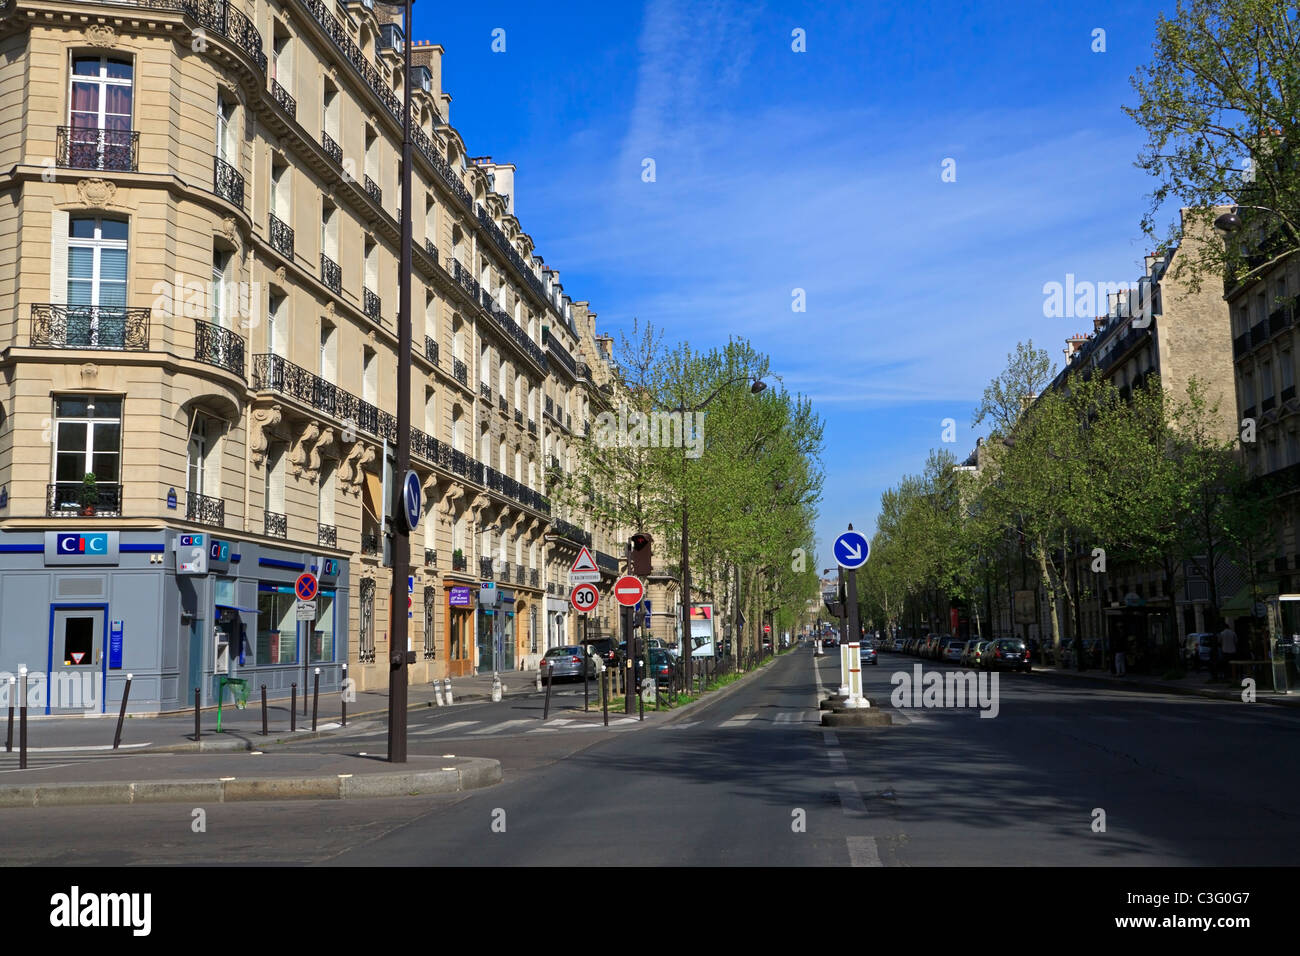 A typical avenue in Paris in the 7th Arrondissement - Stock Image